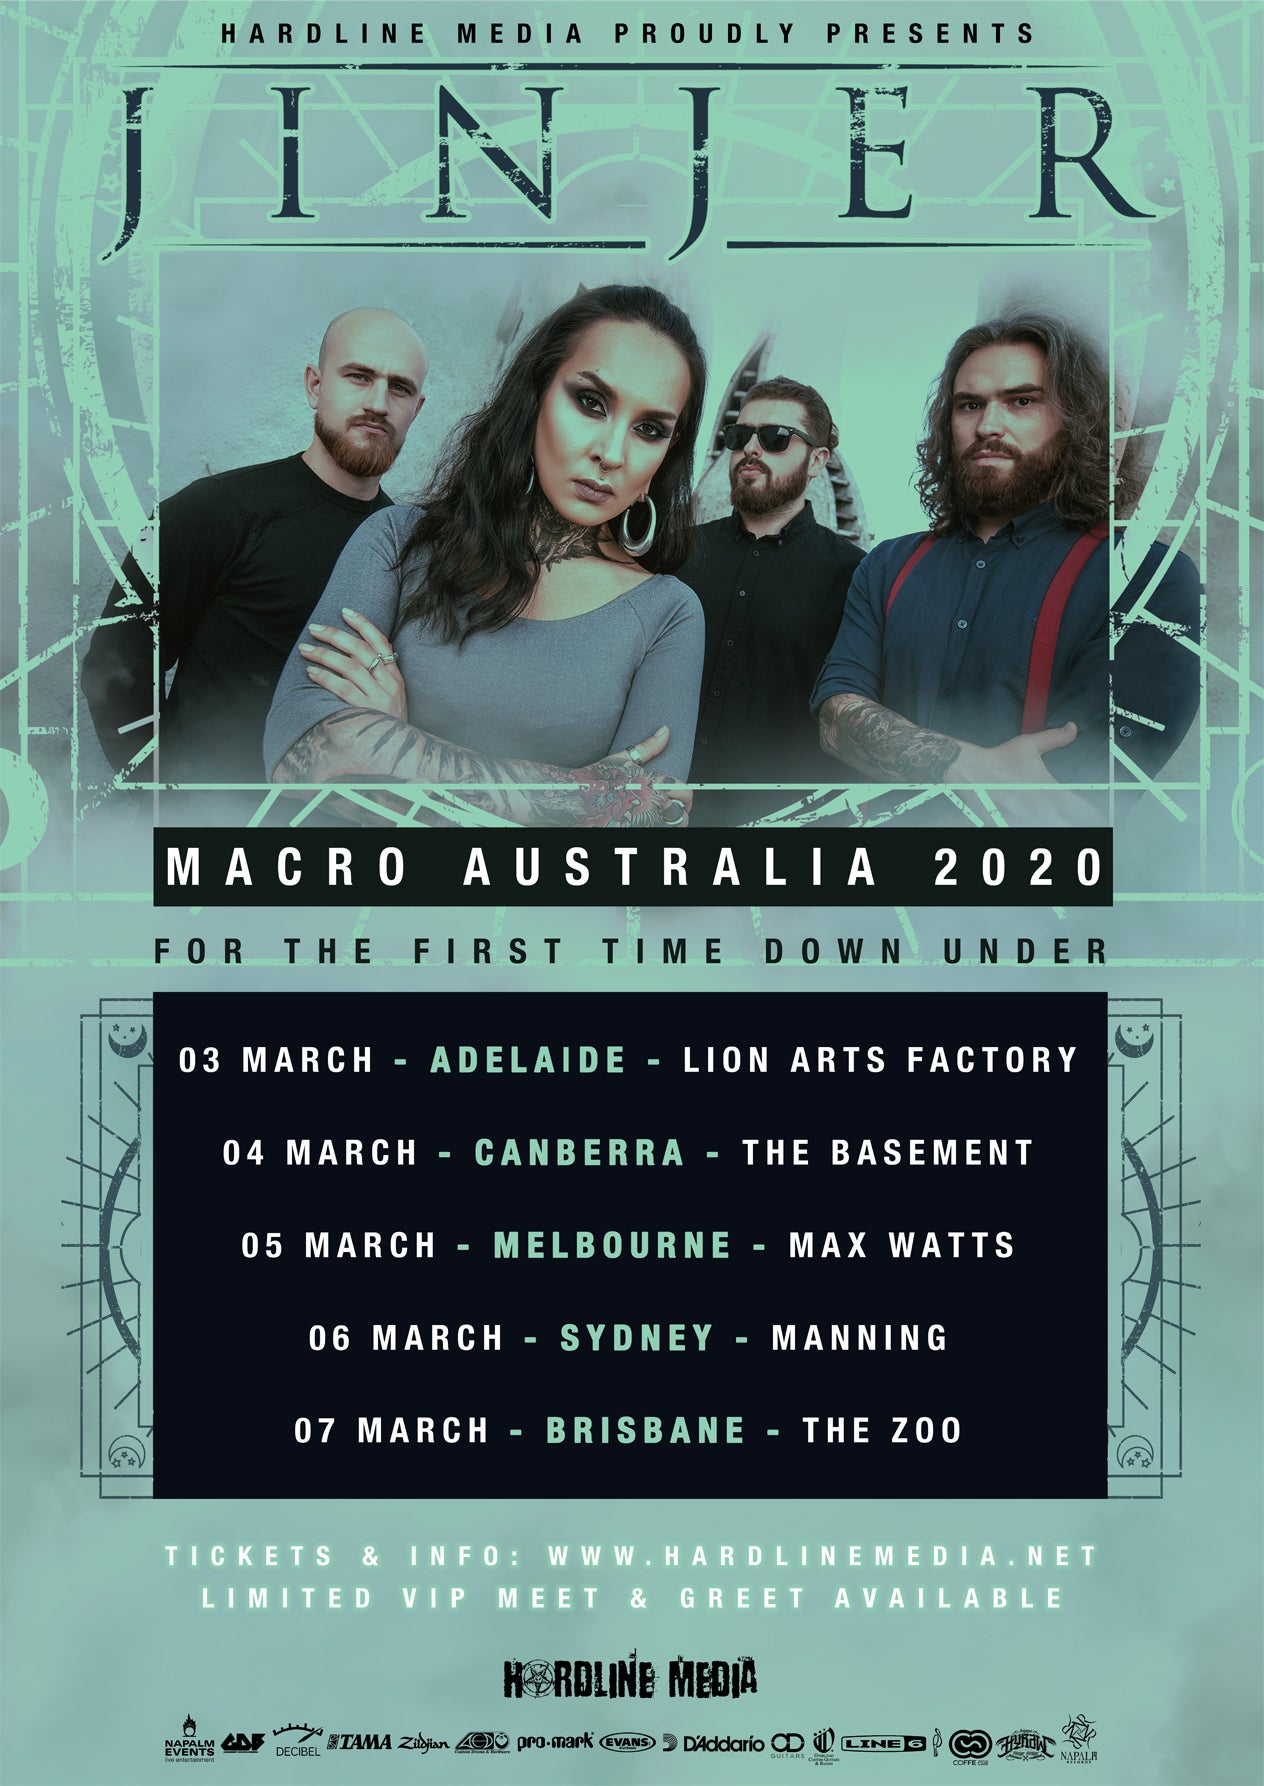 Image of GO TO OZTIX.COM.AU!!! GA TICKET - JINJER - CANBERRA, THE BASEMENT - WED 4TH MARCH, 2020